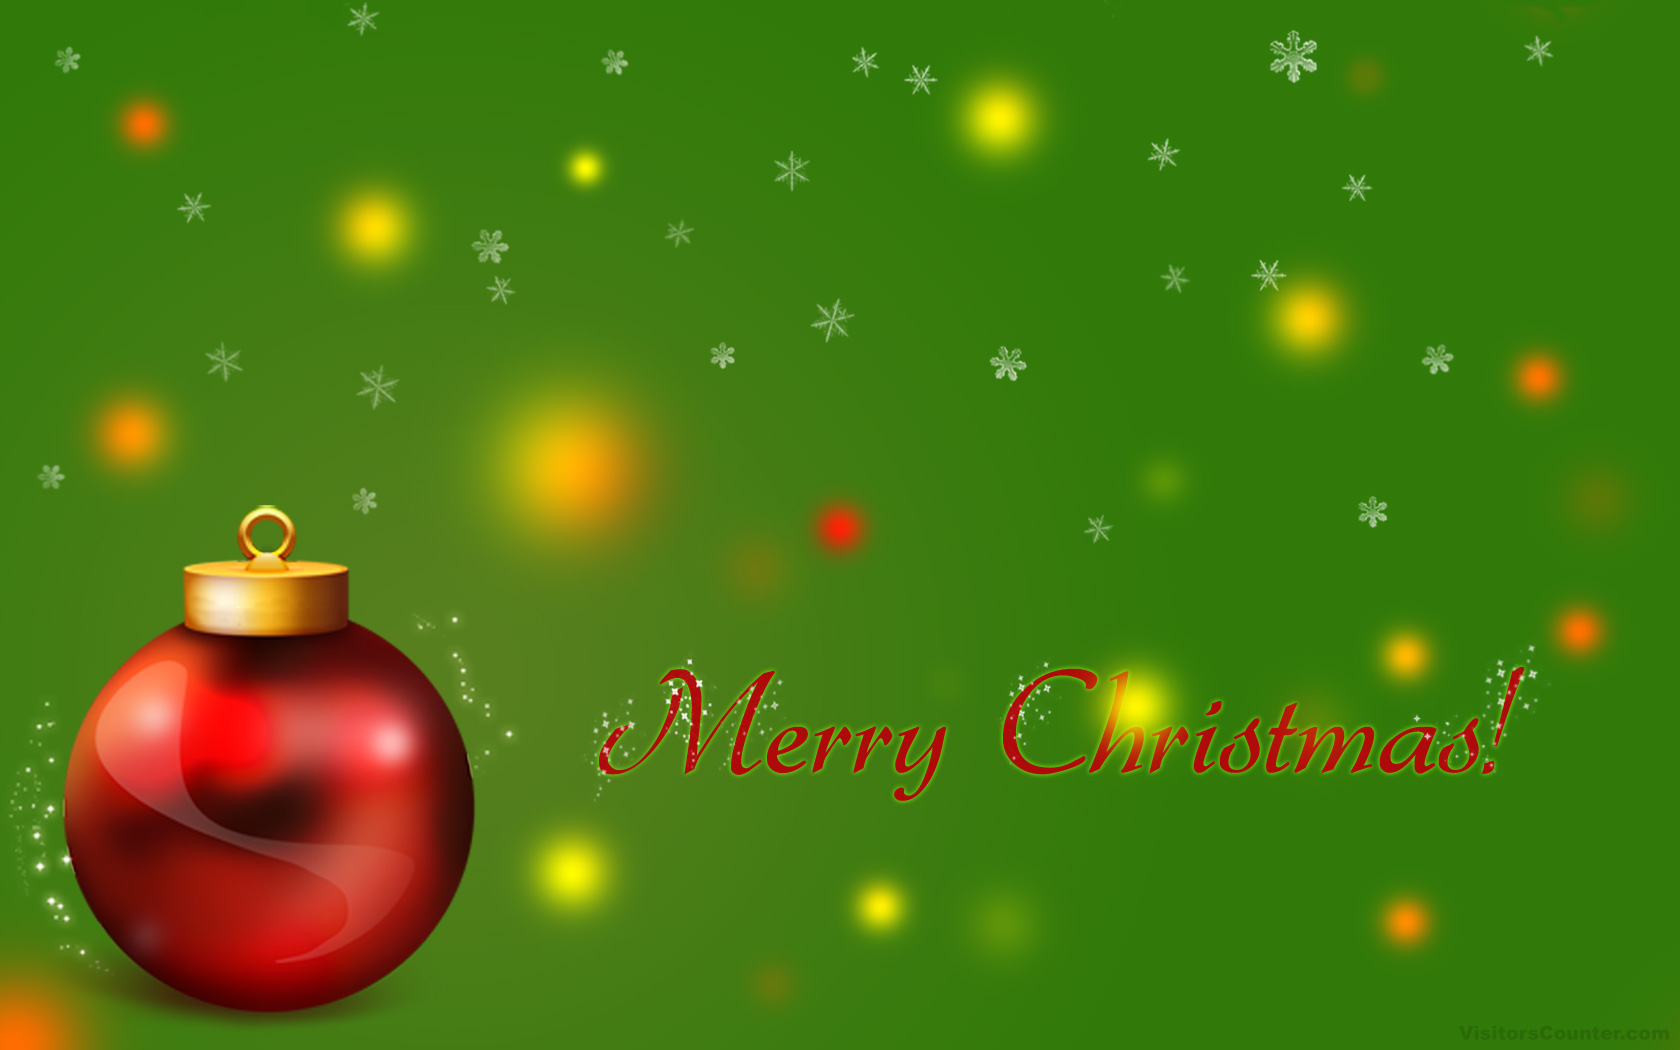 1680x1050 Merry Christmas desktop PC and Mac wallpaper